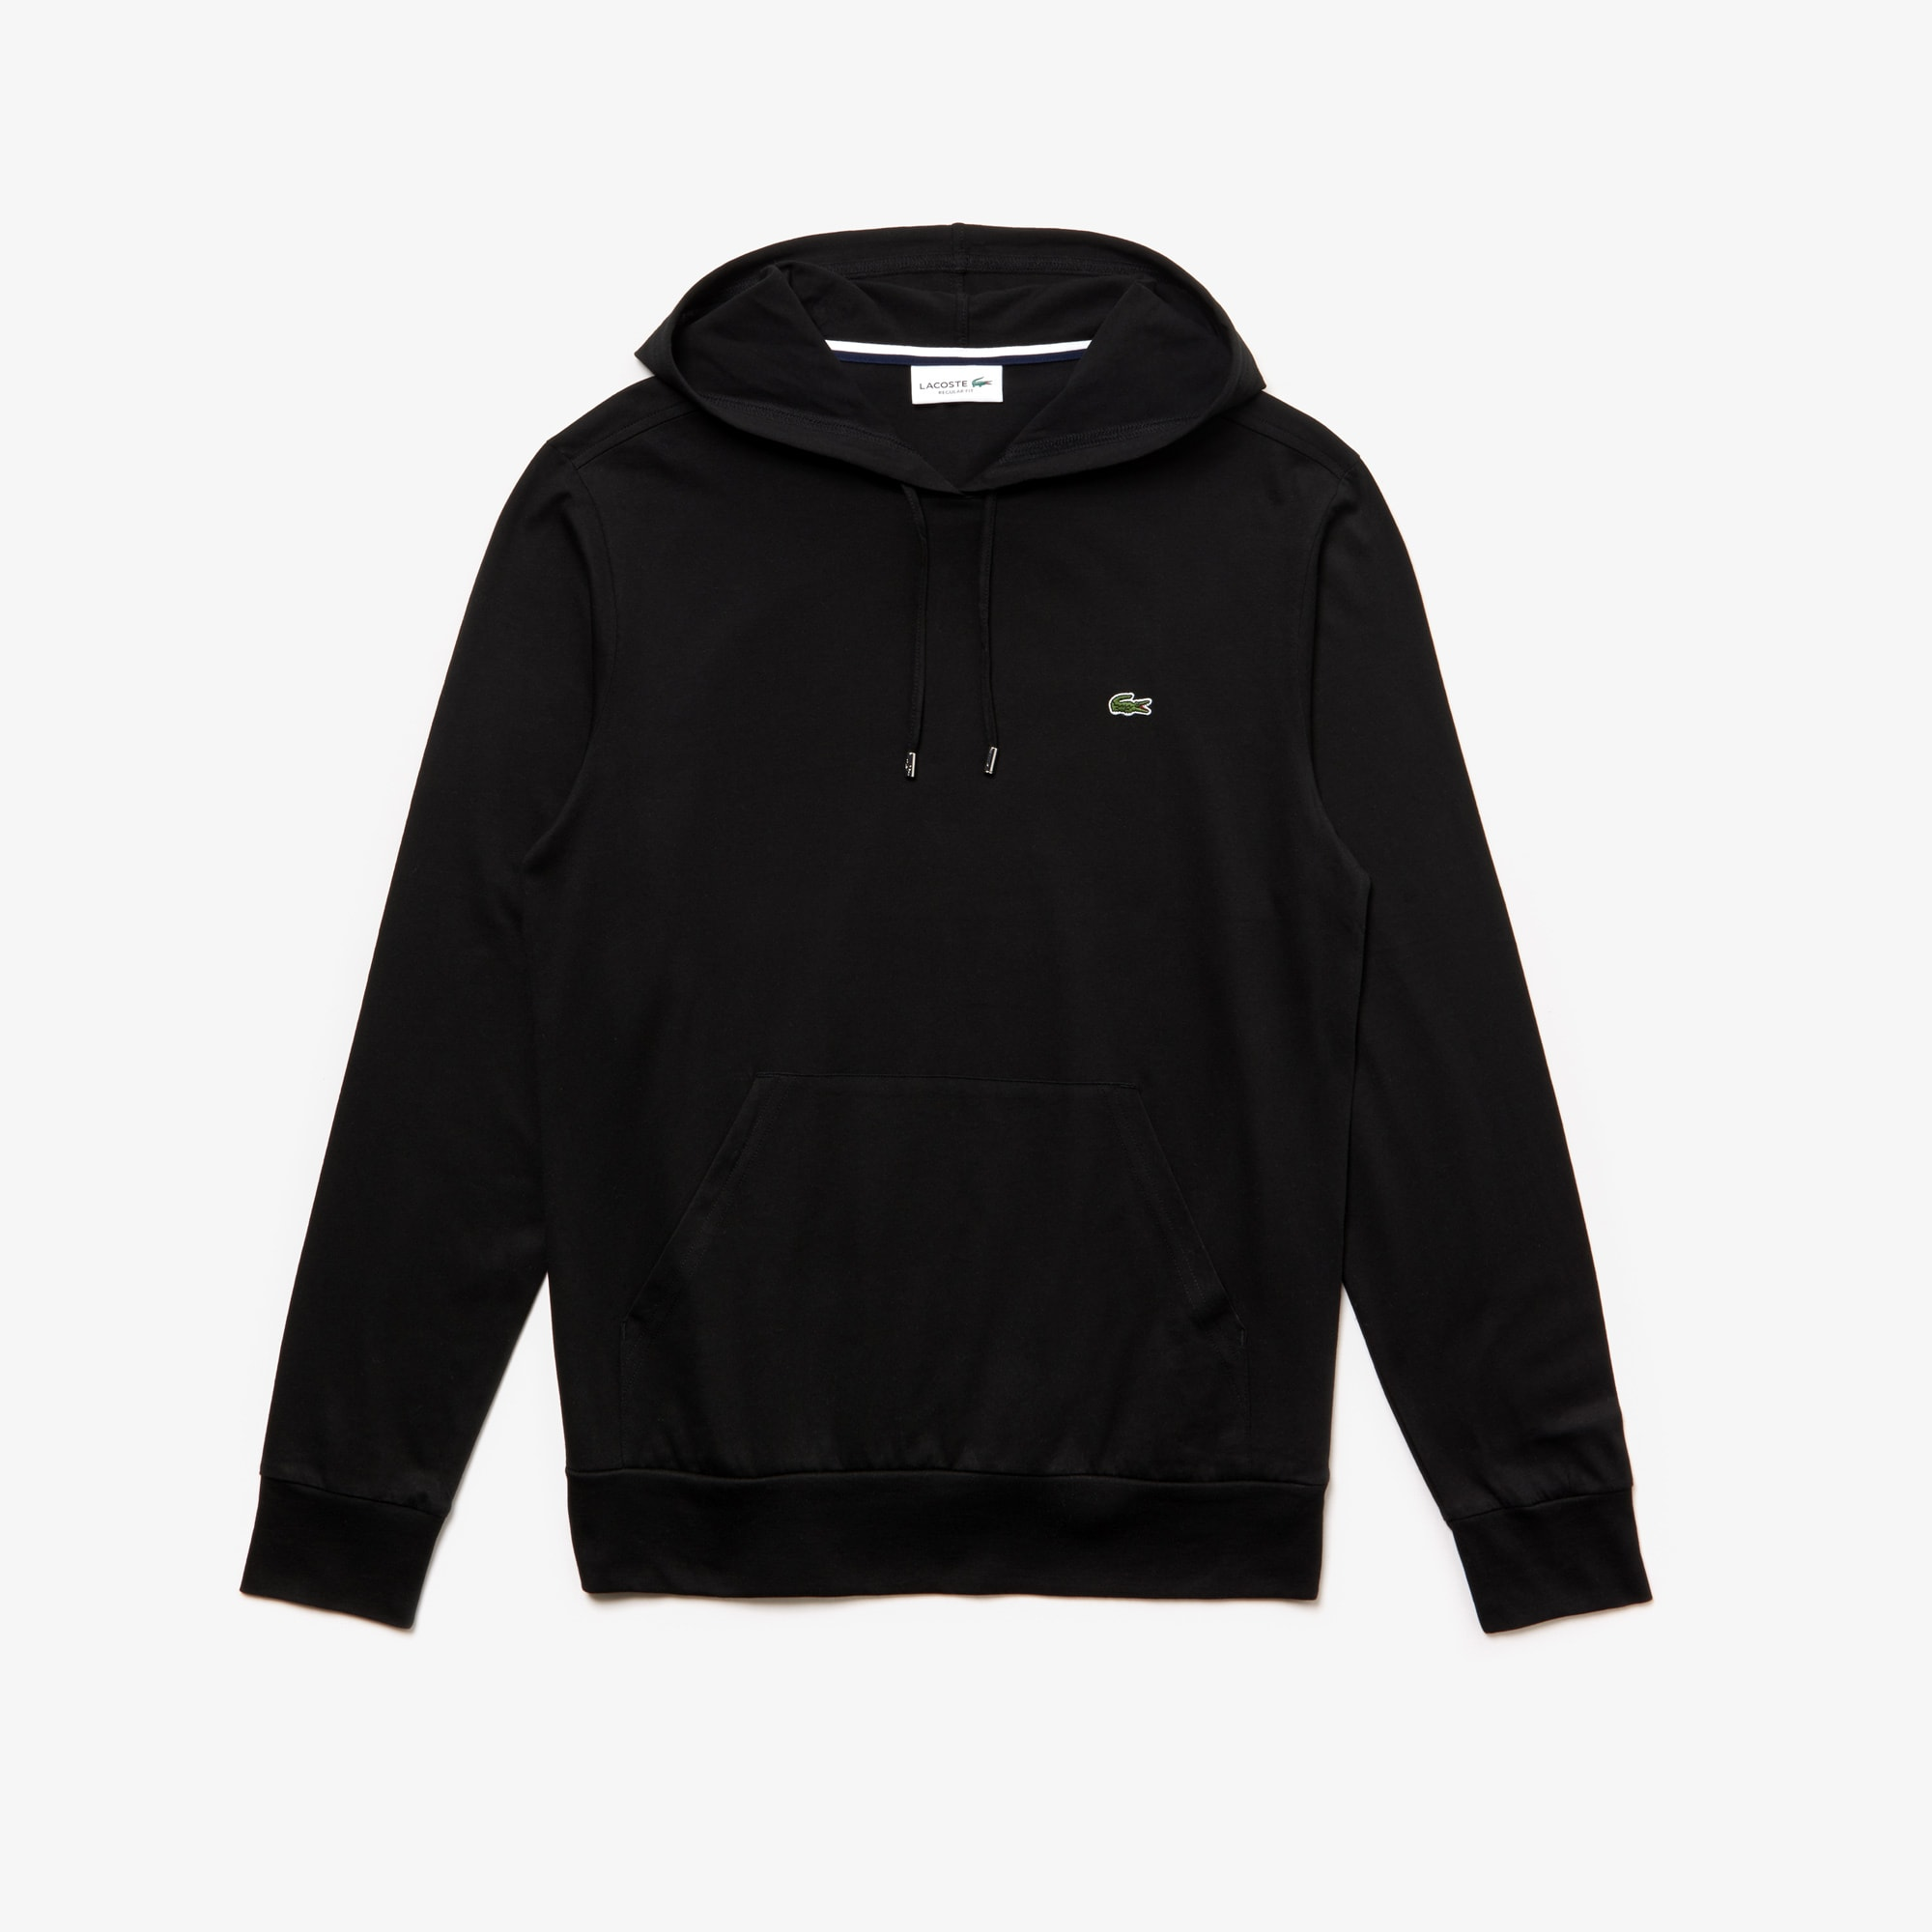 Men's Hooded Cotton Sweatshirt